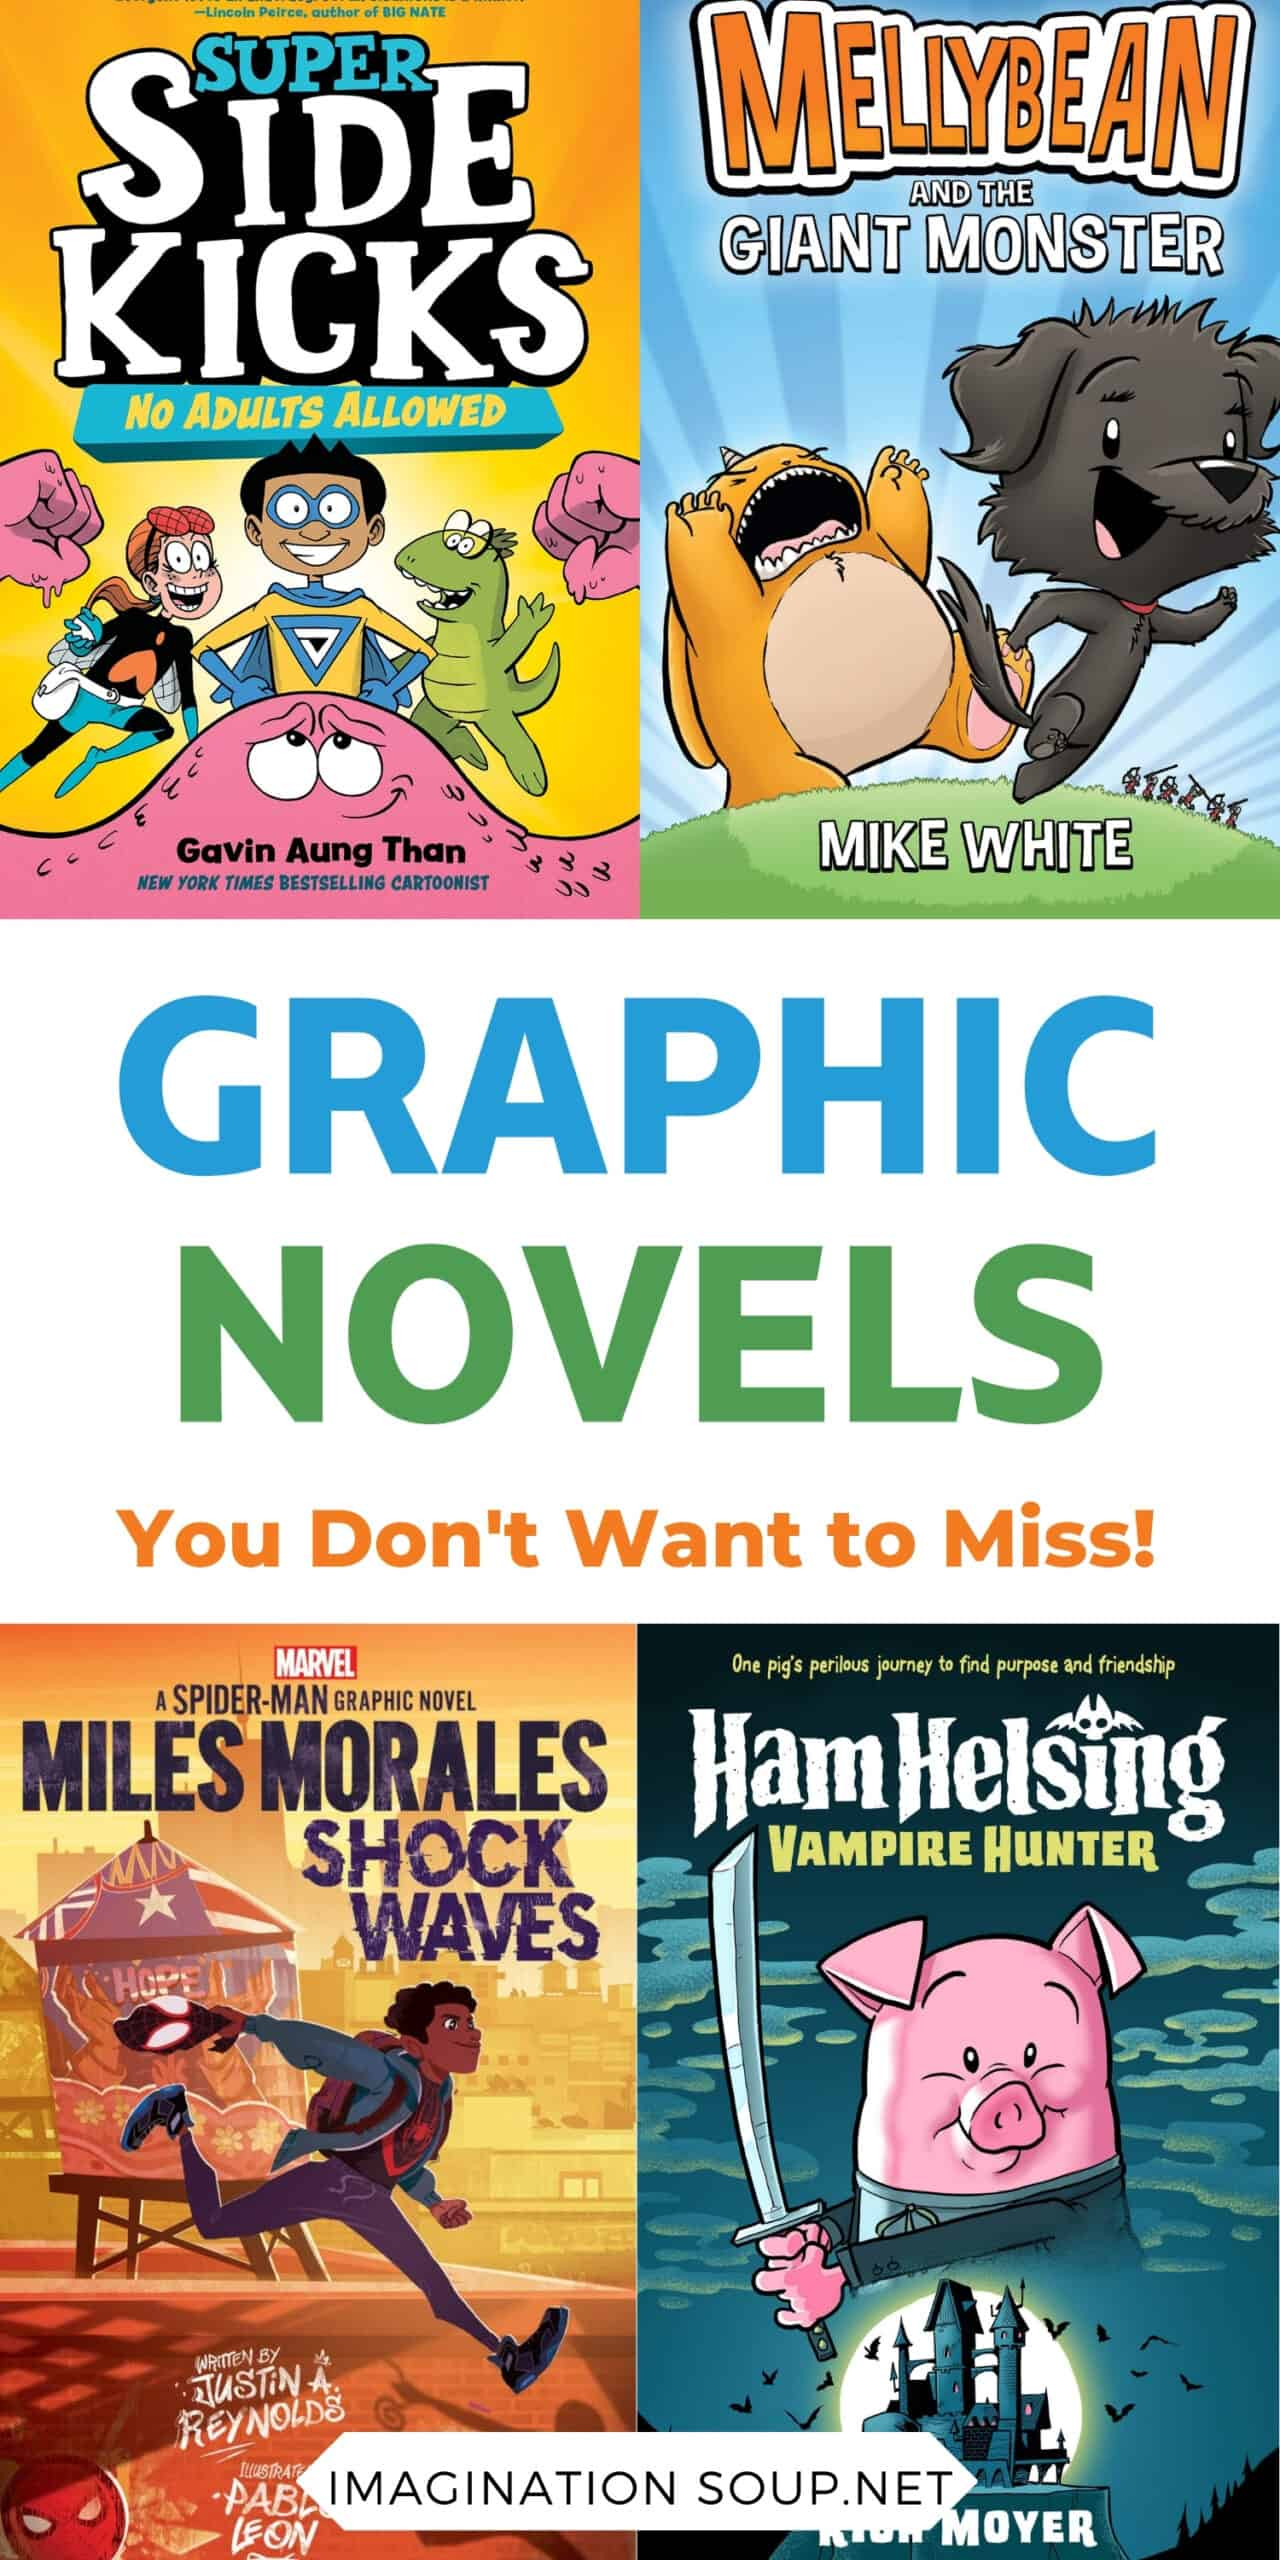 16 new graphic novels you don't want to miss